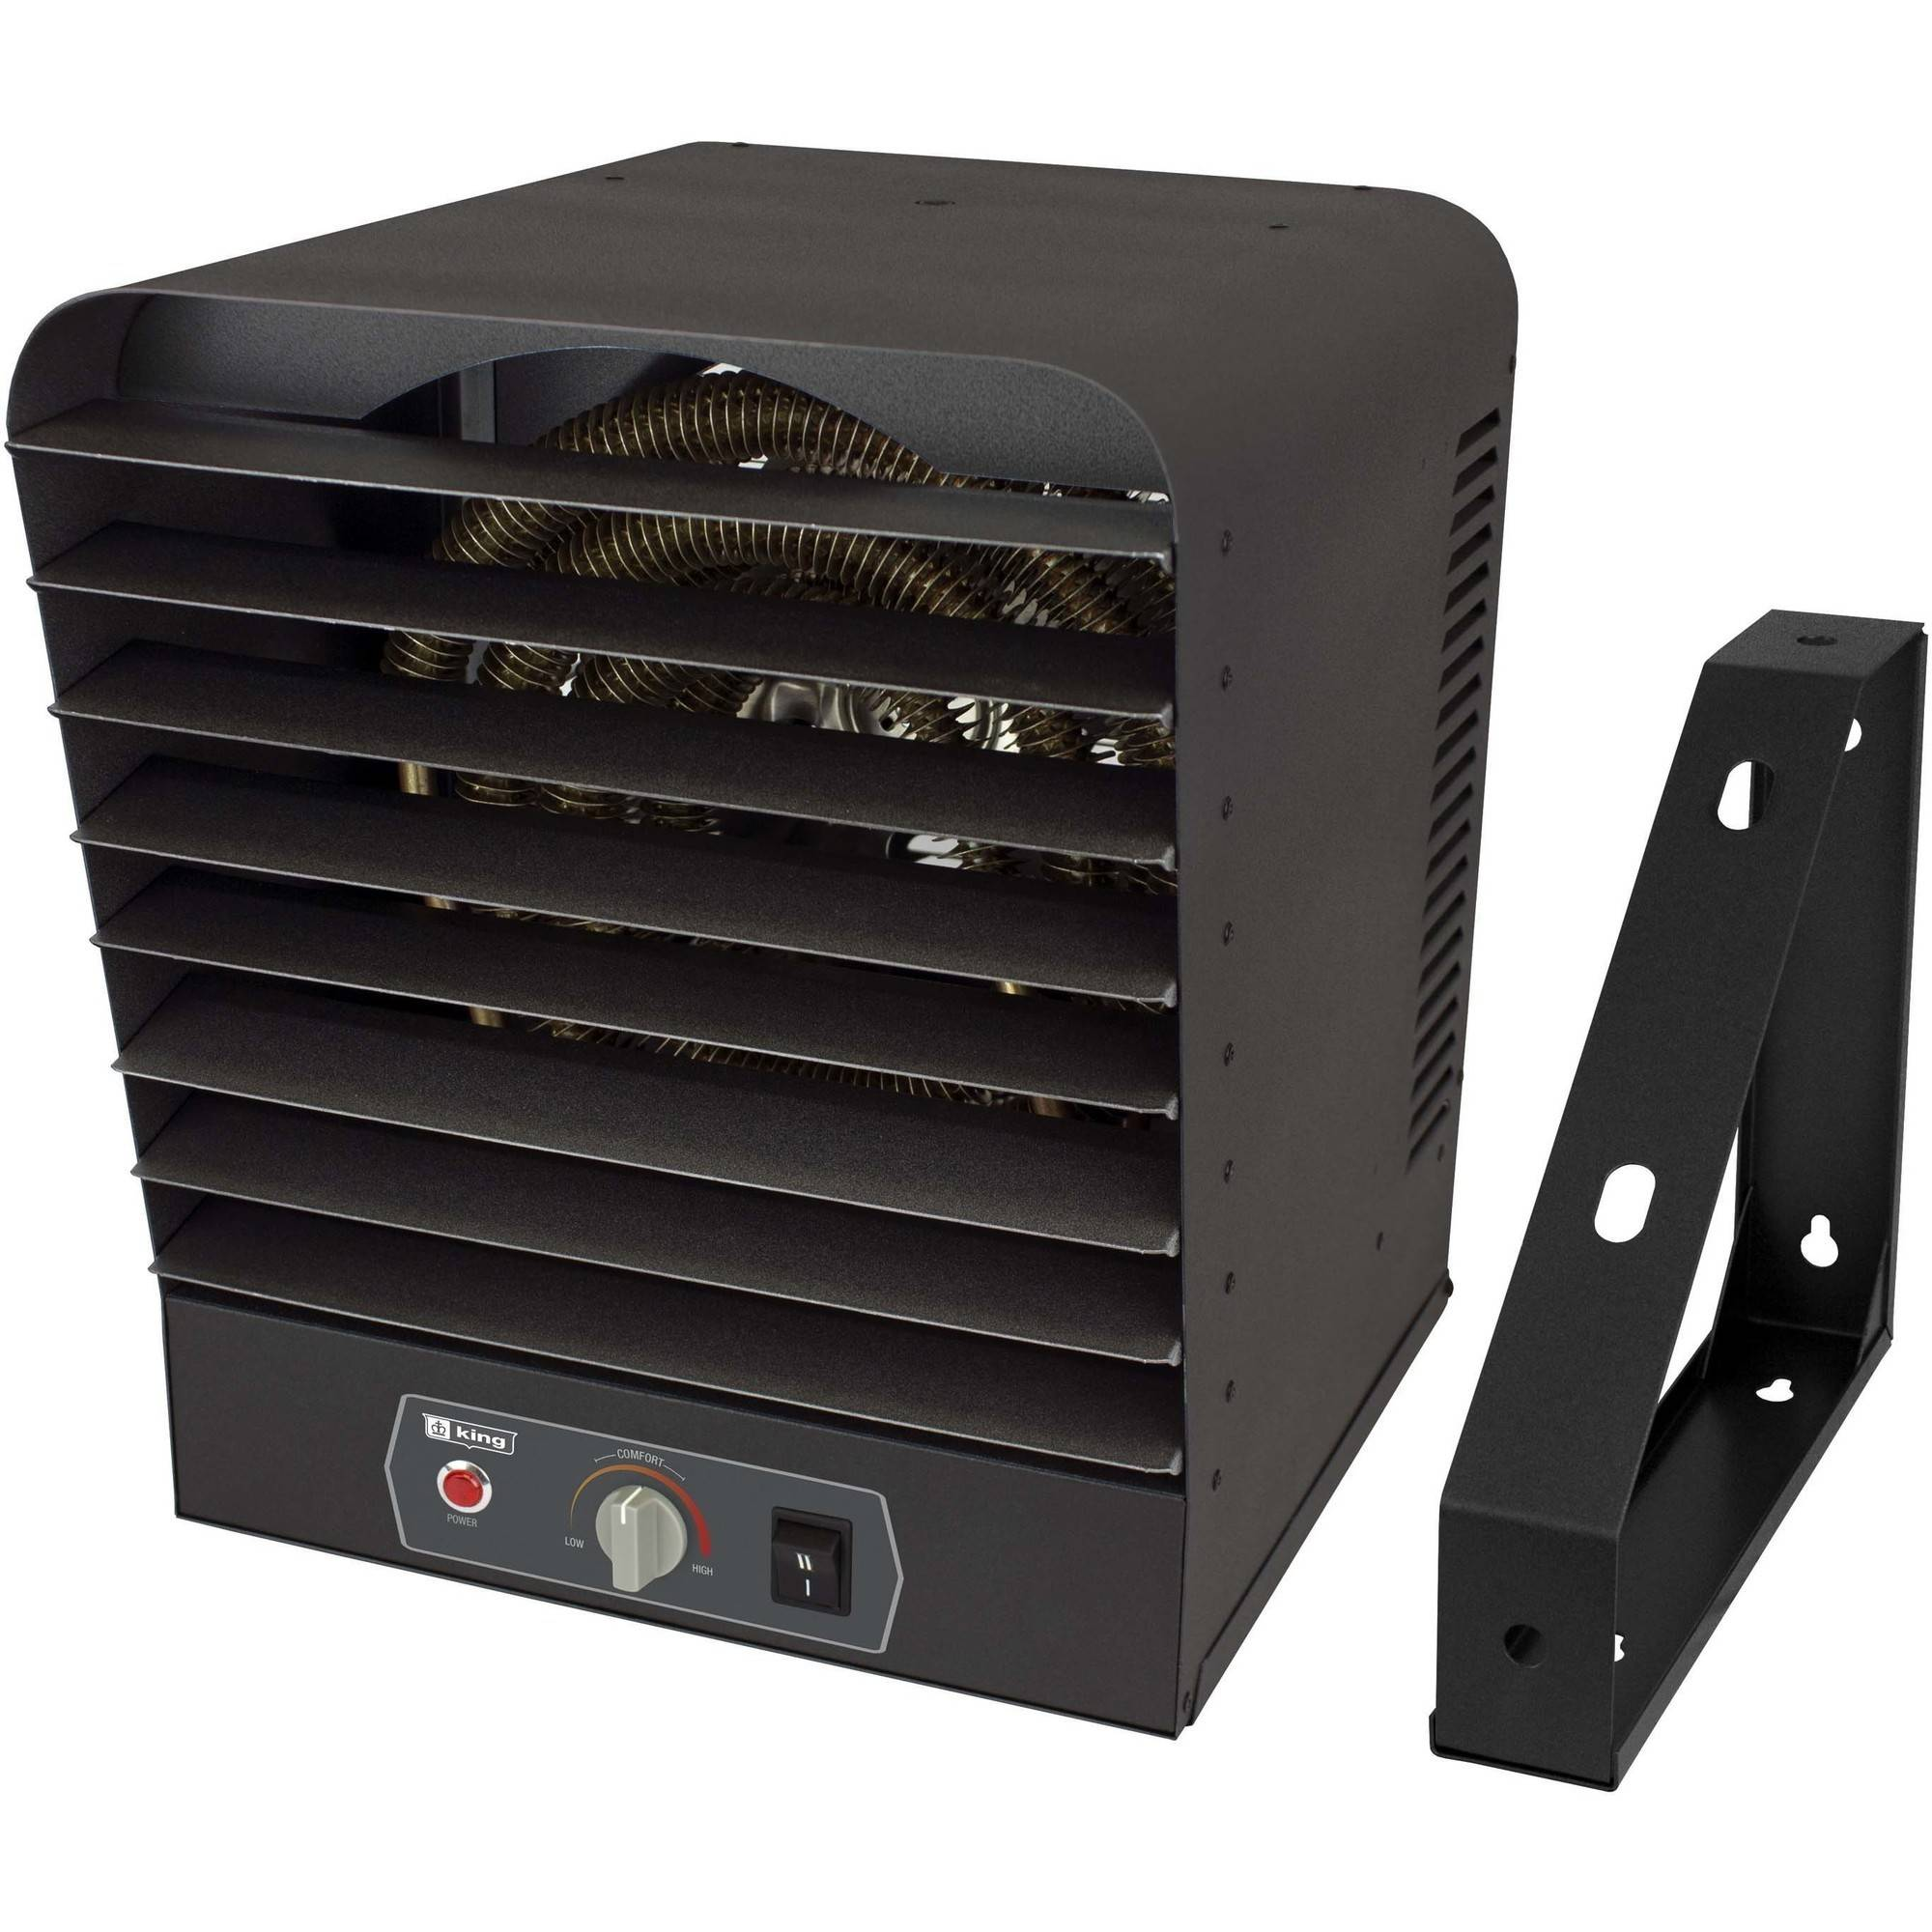 King GH2405TB 240 Volt 5000 Watt Garage Heater, Gray